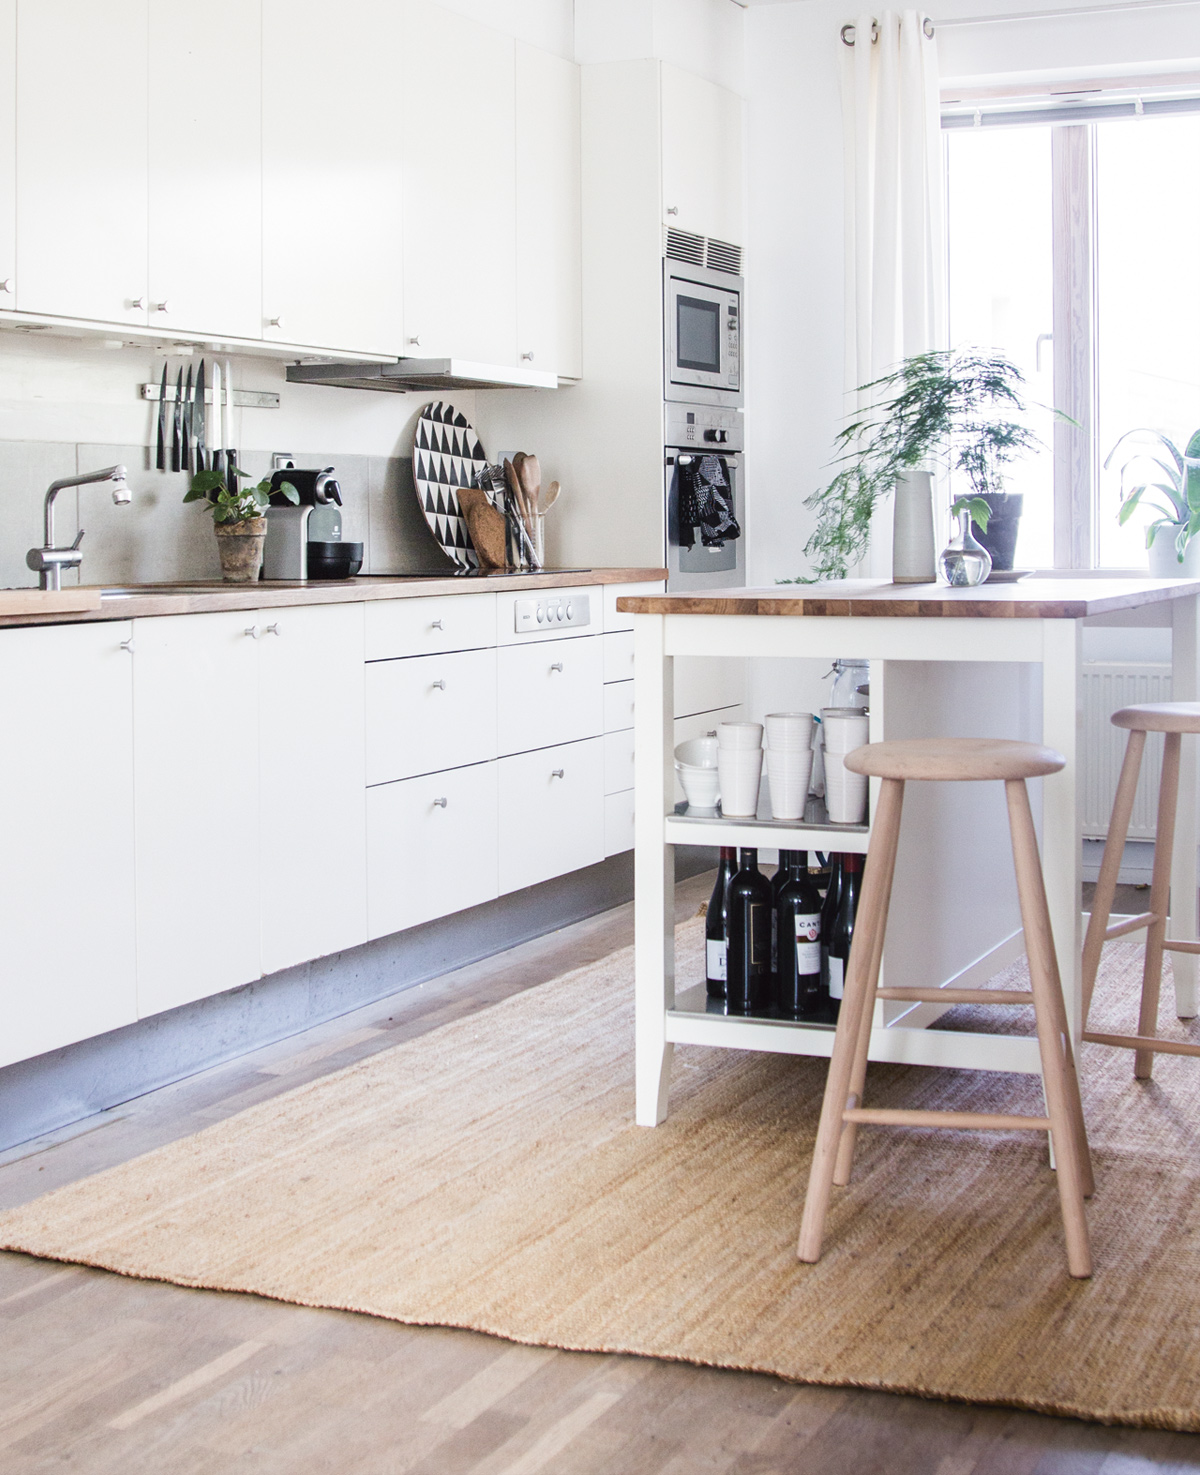 Niki-Brantmark-Lagom-and--the-Swedish-Art-of-Living-a-Balanced-Happy-Life-Minimal-Living.jpg